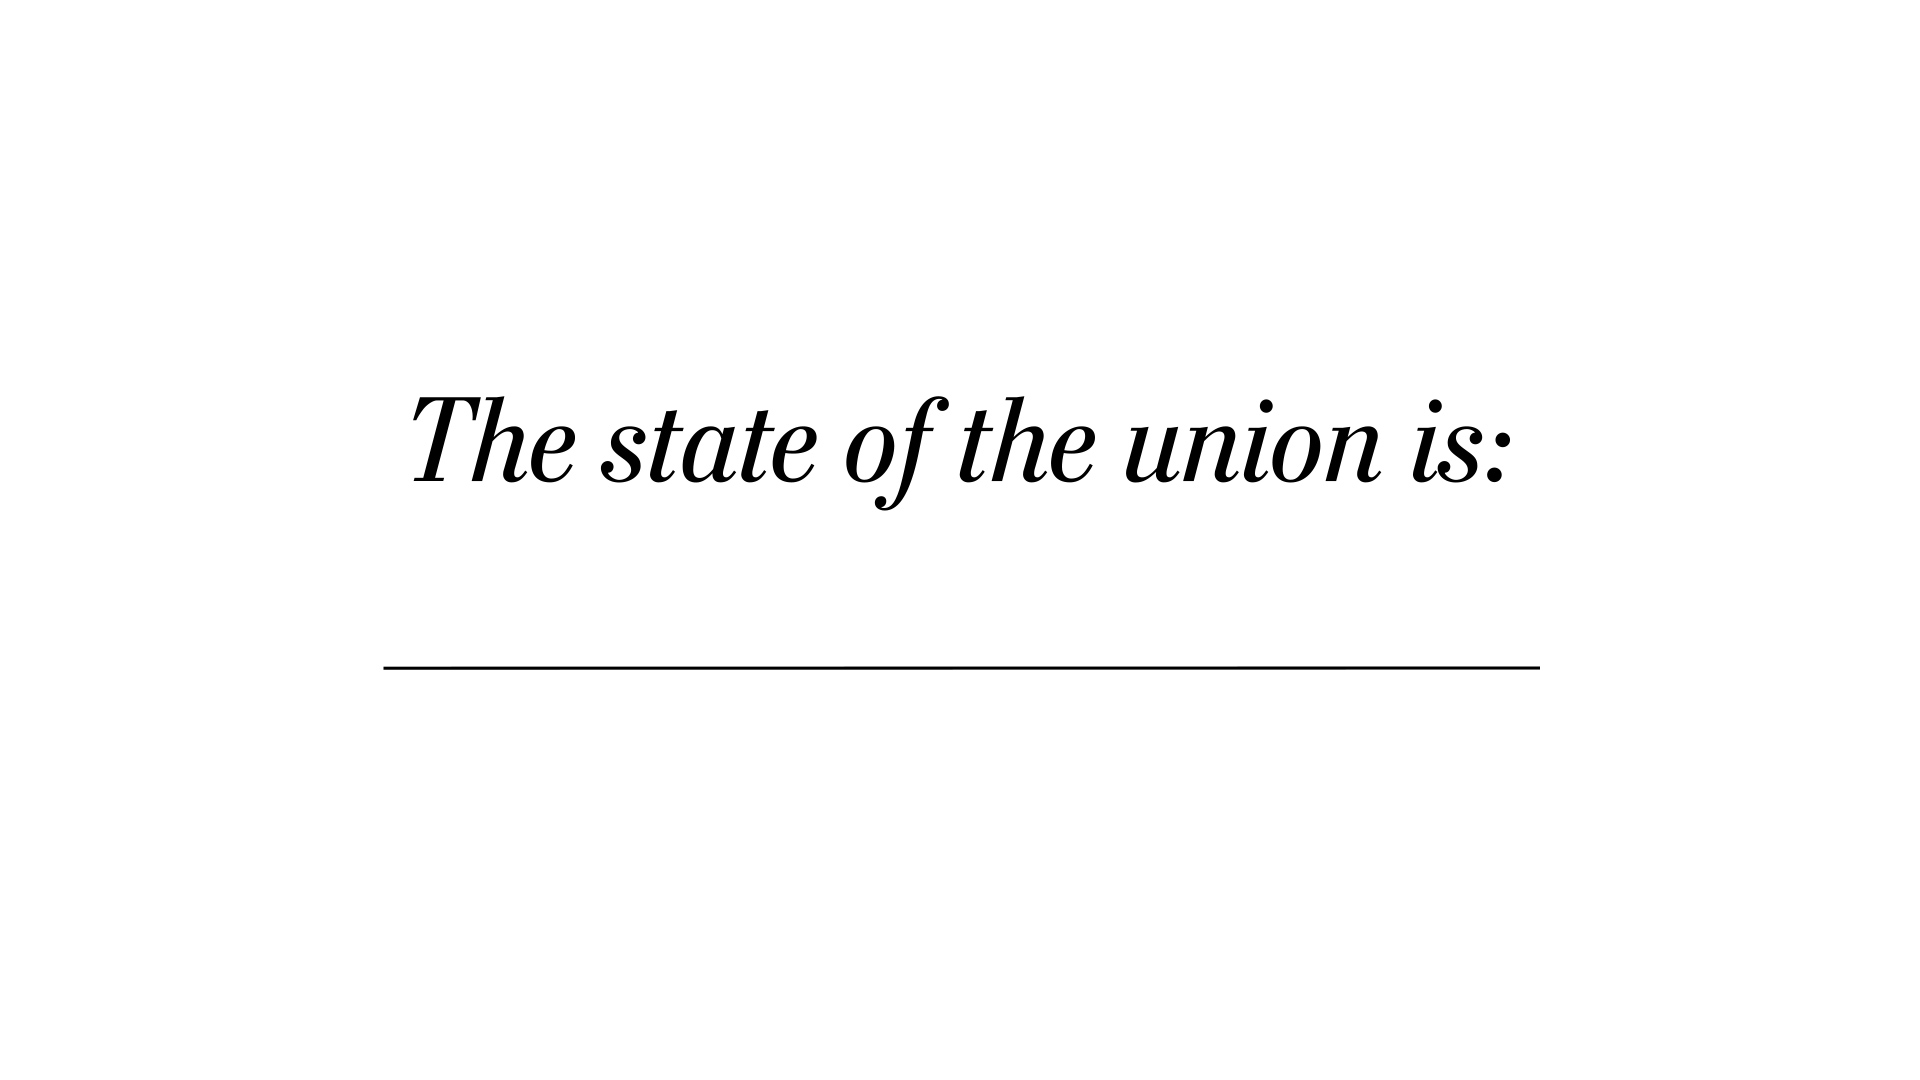 How to name the union